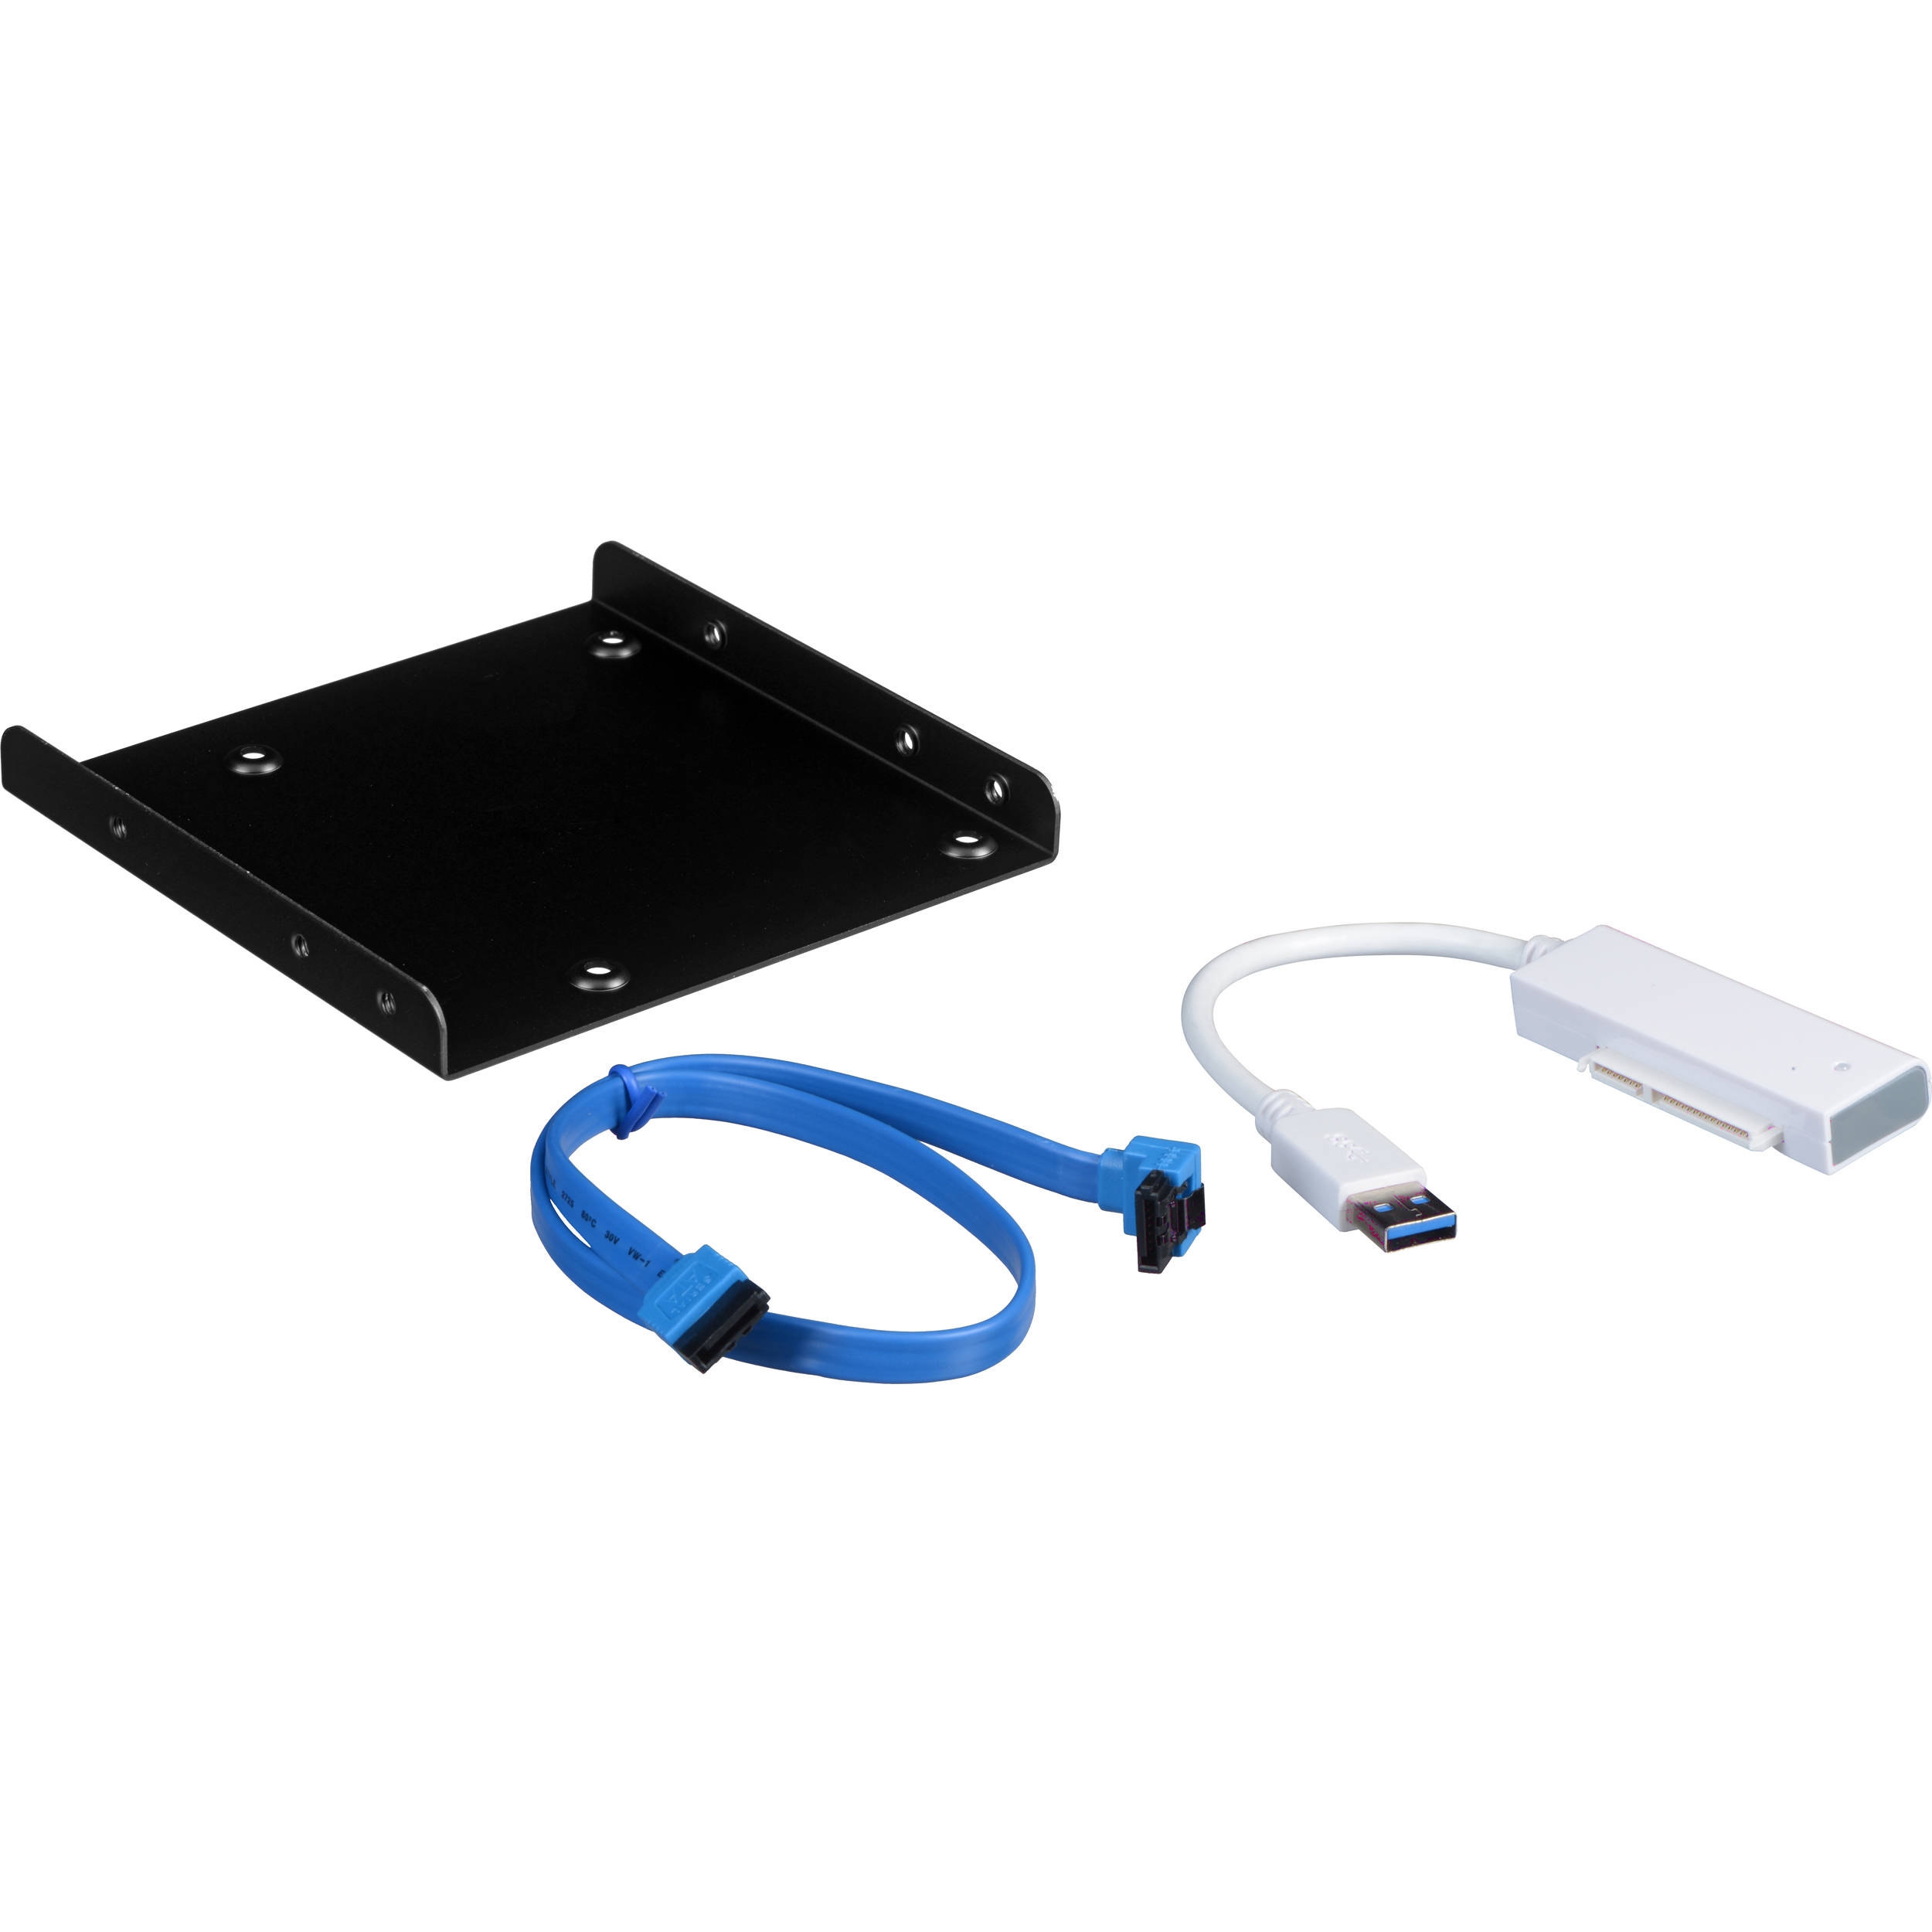 Crucial ssd install kit ctssdinstallac bh photo video crucial ssd install kit publicscrutiny Image collections